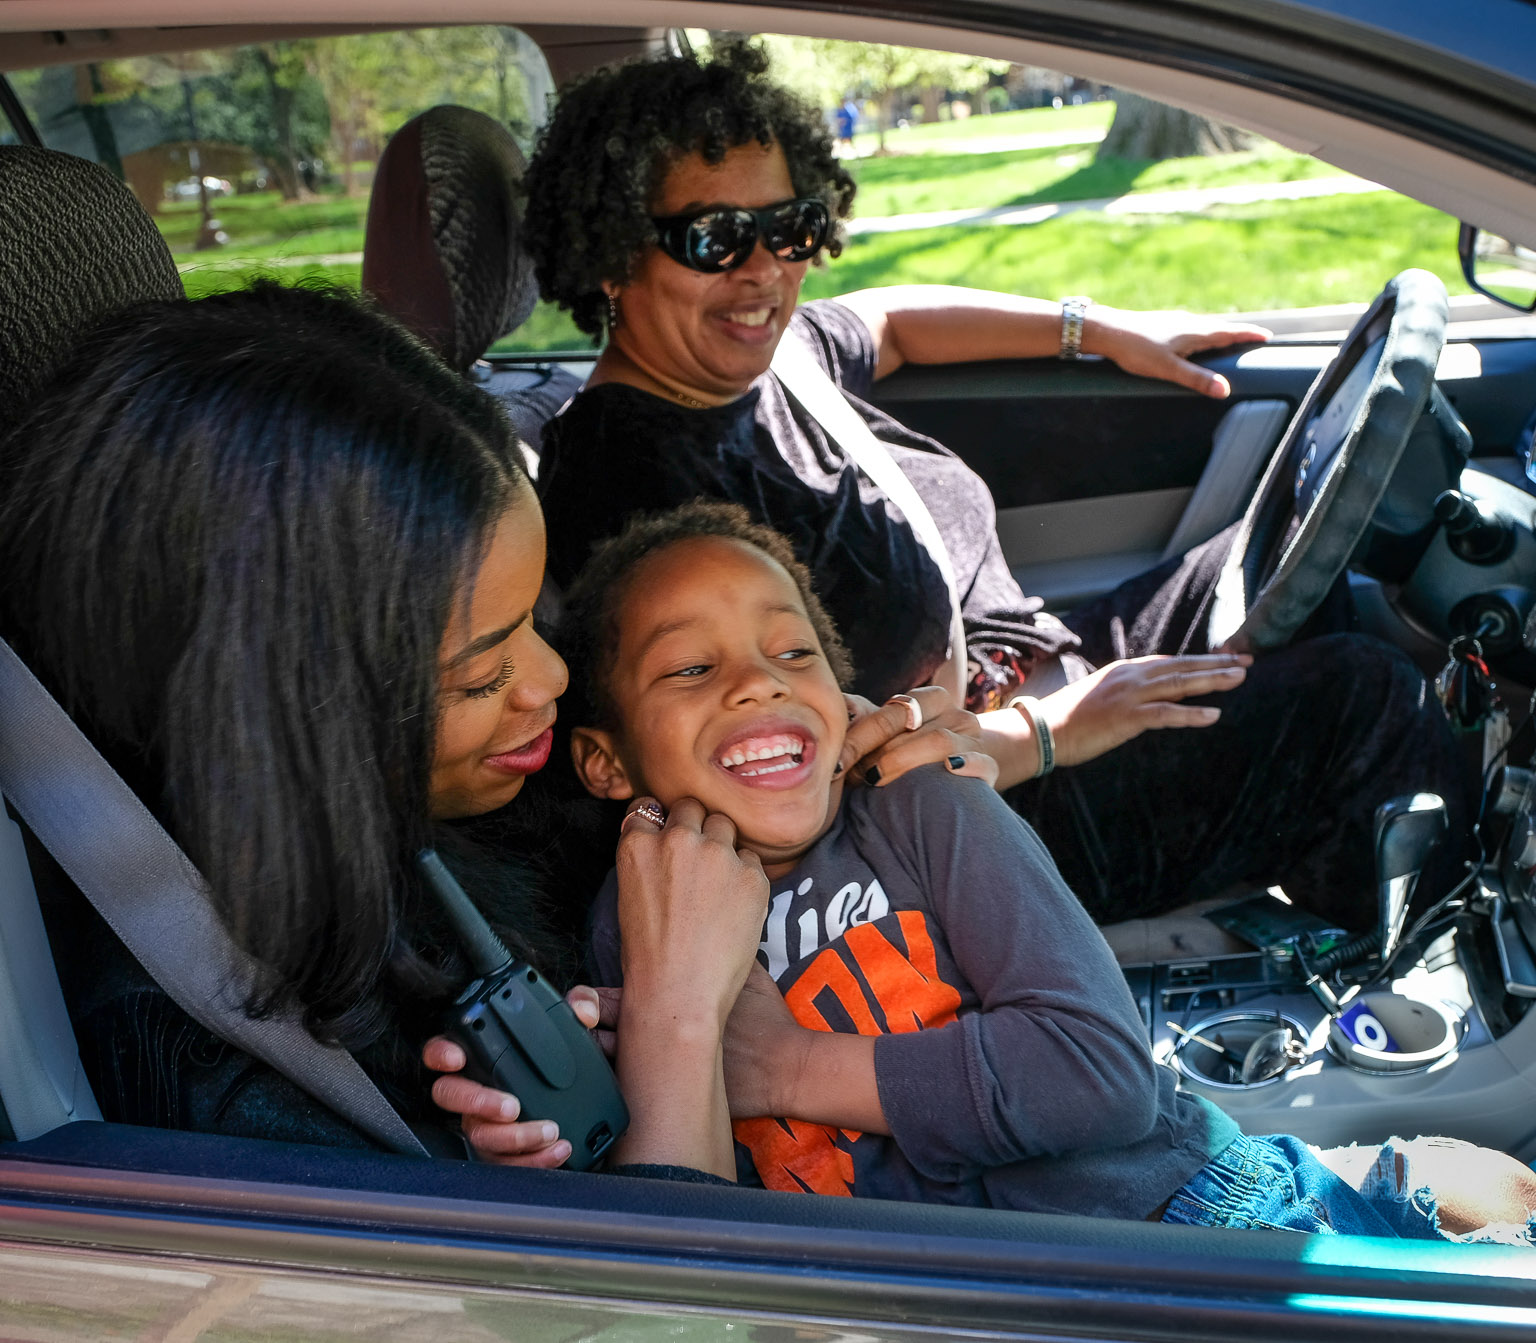 Snapped his little fingers and a car full of queens showed up. We got grandmama and auntie...